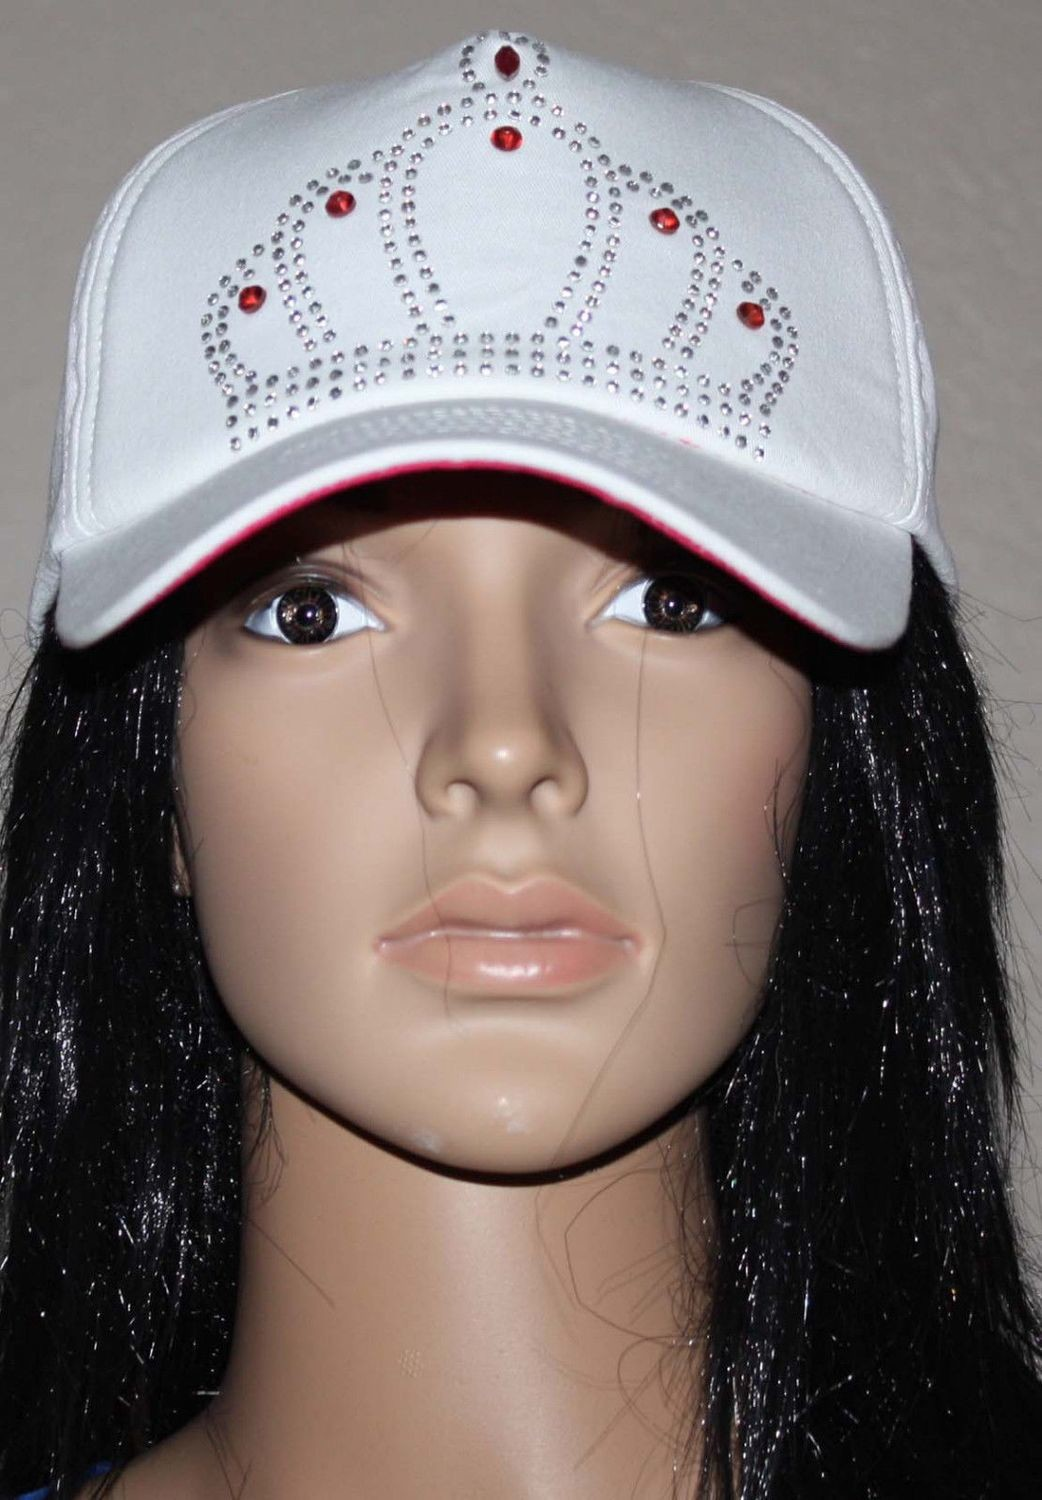 Betsey Johnson Women's White/Magenta Rhinestone Embellished Crown Cap (Adjustable)